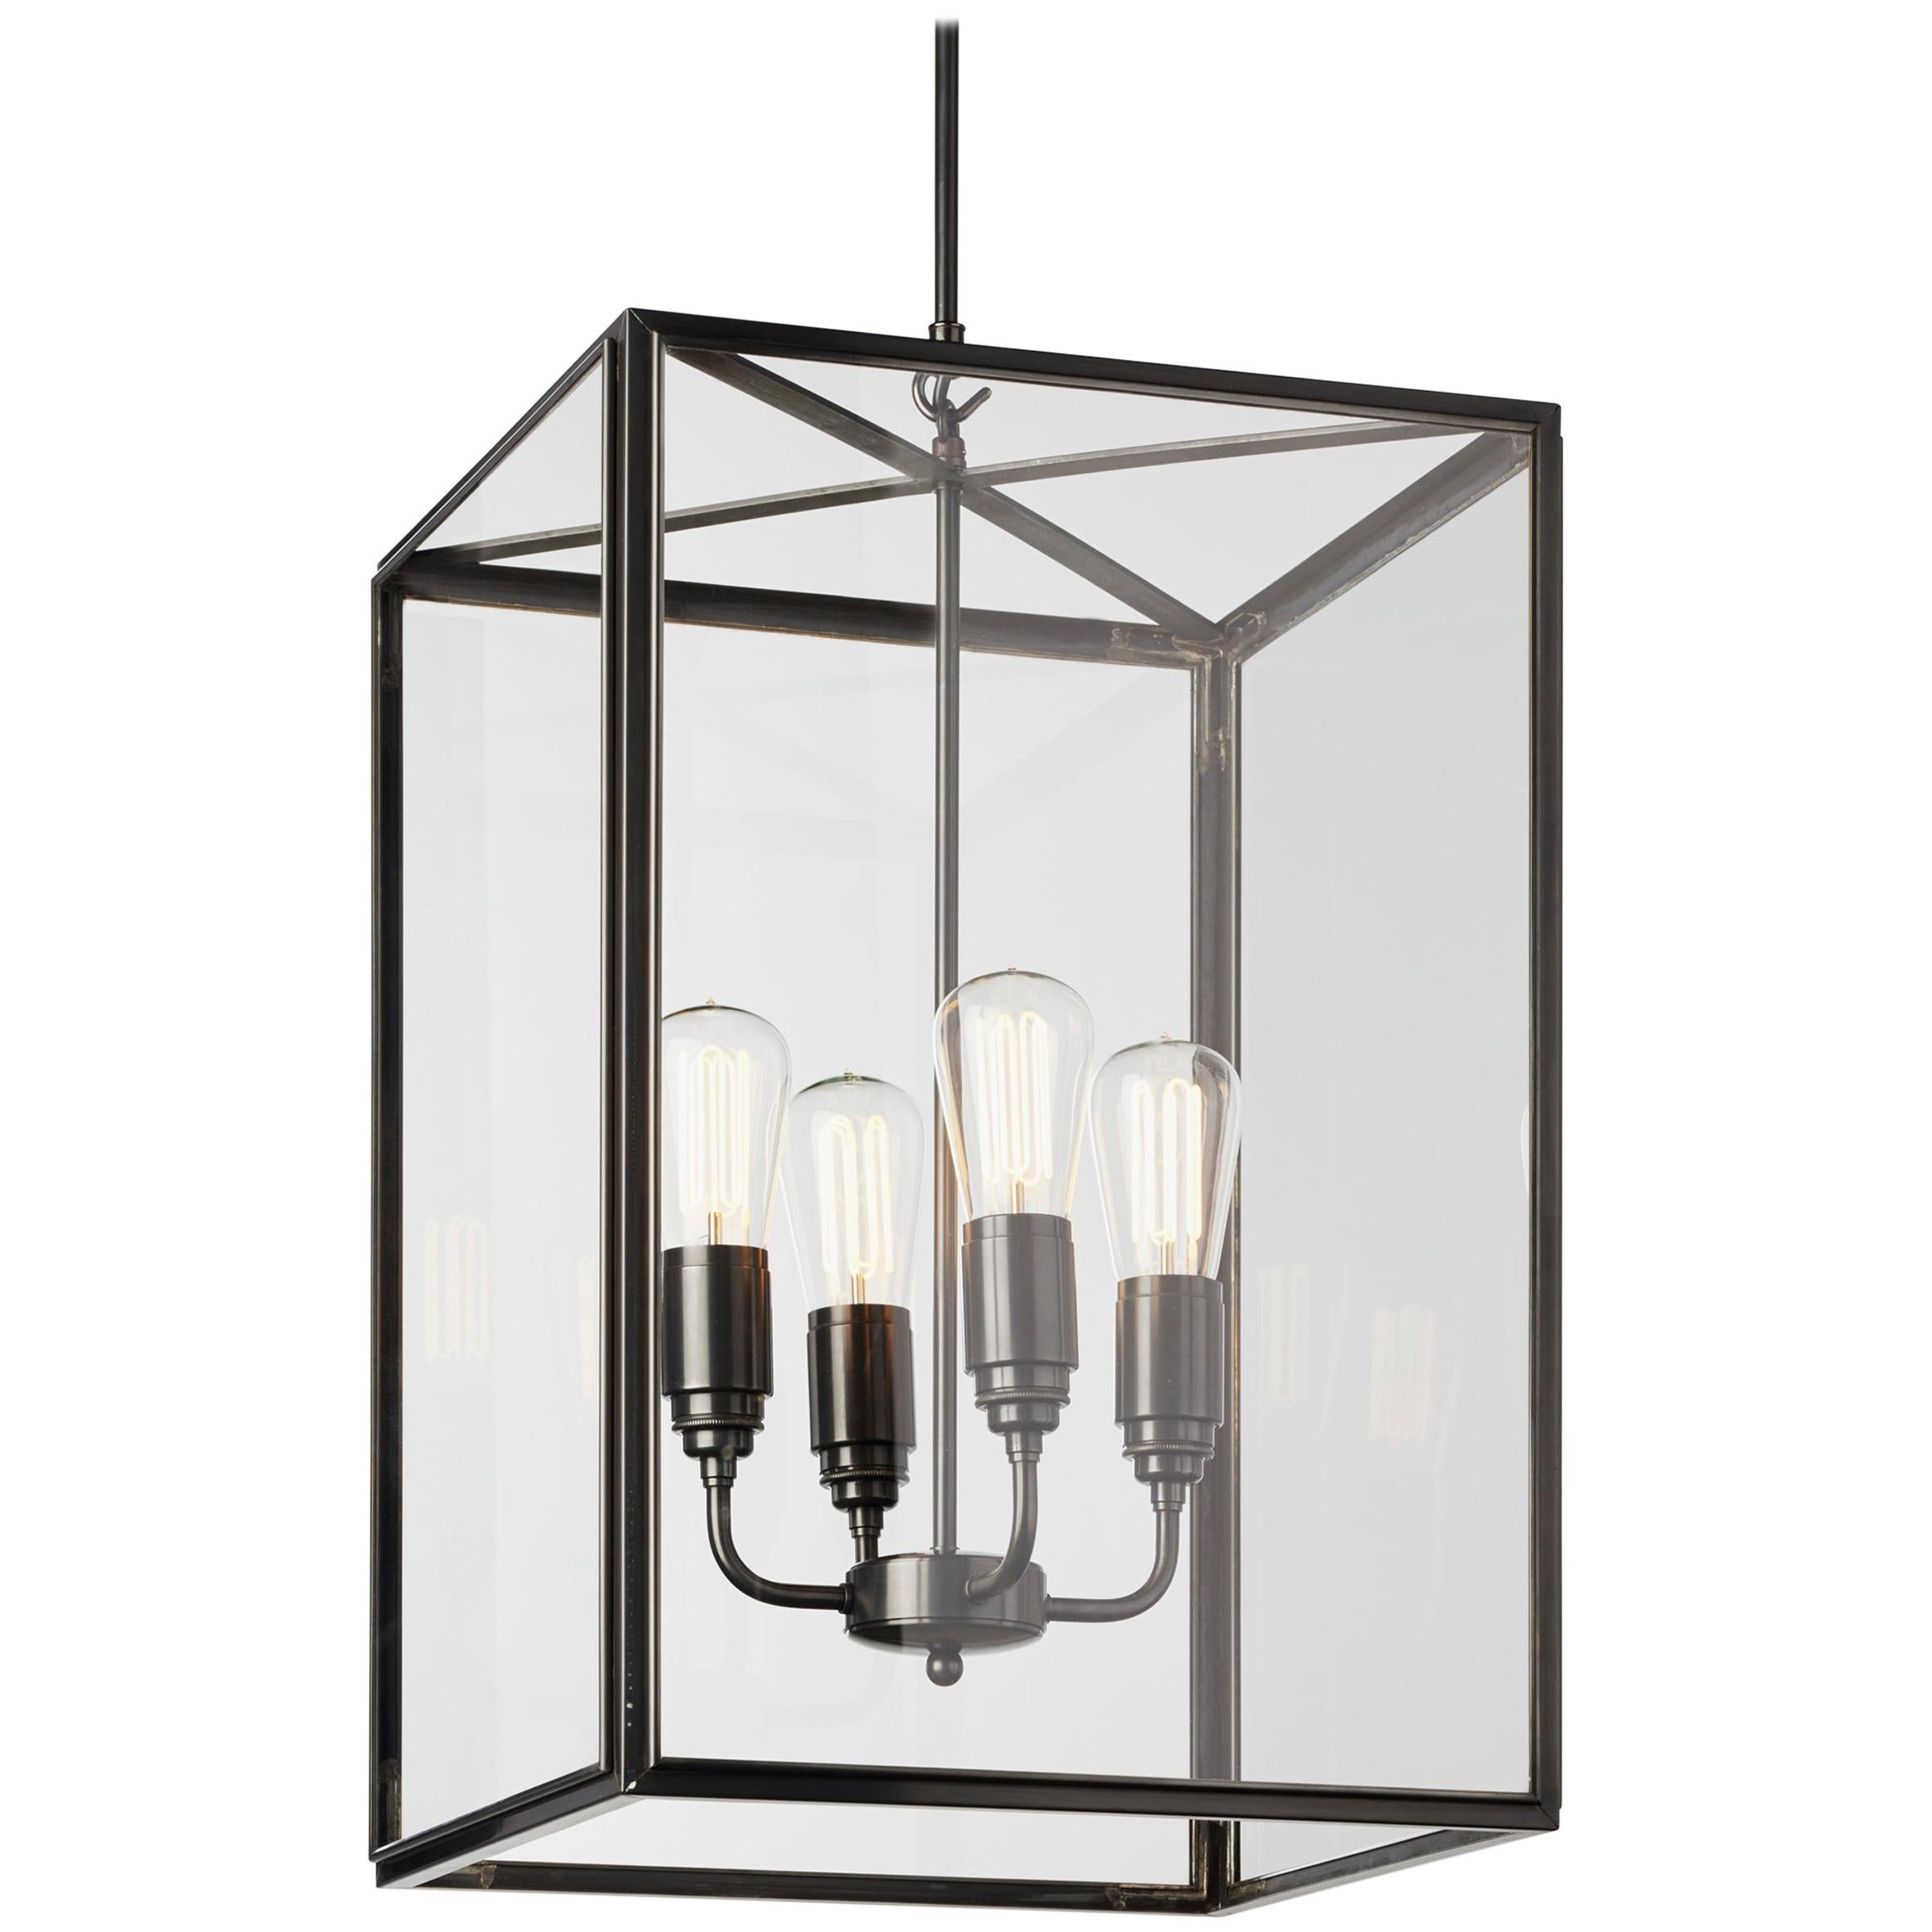 Tekna Ilford Large-C Pendant Light with Dark Bronze Finish and Clear Glass